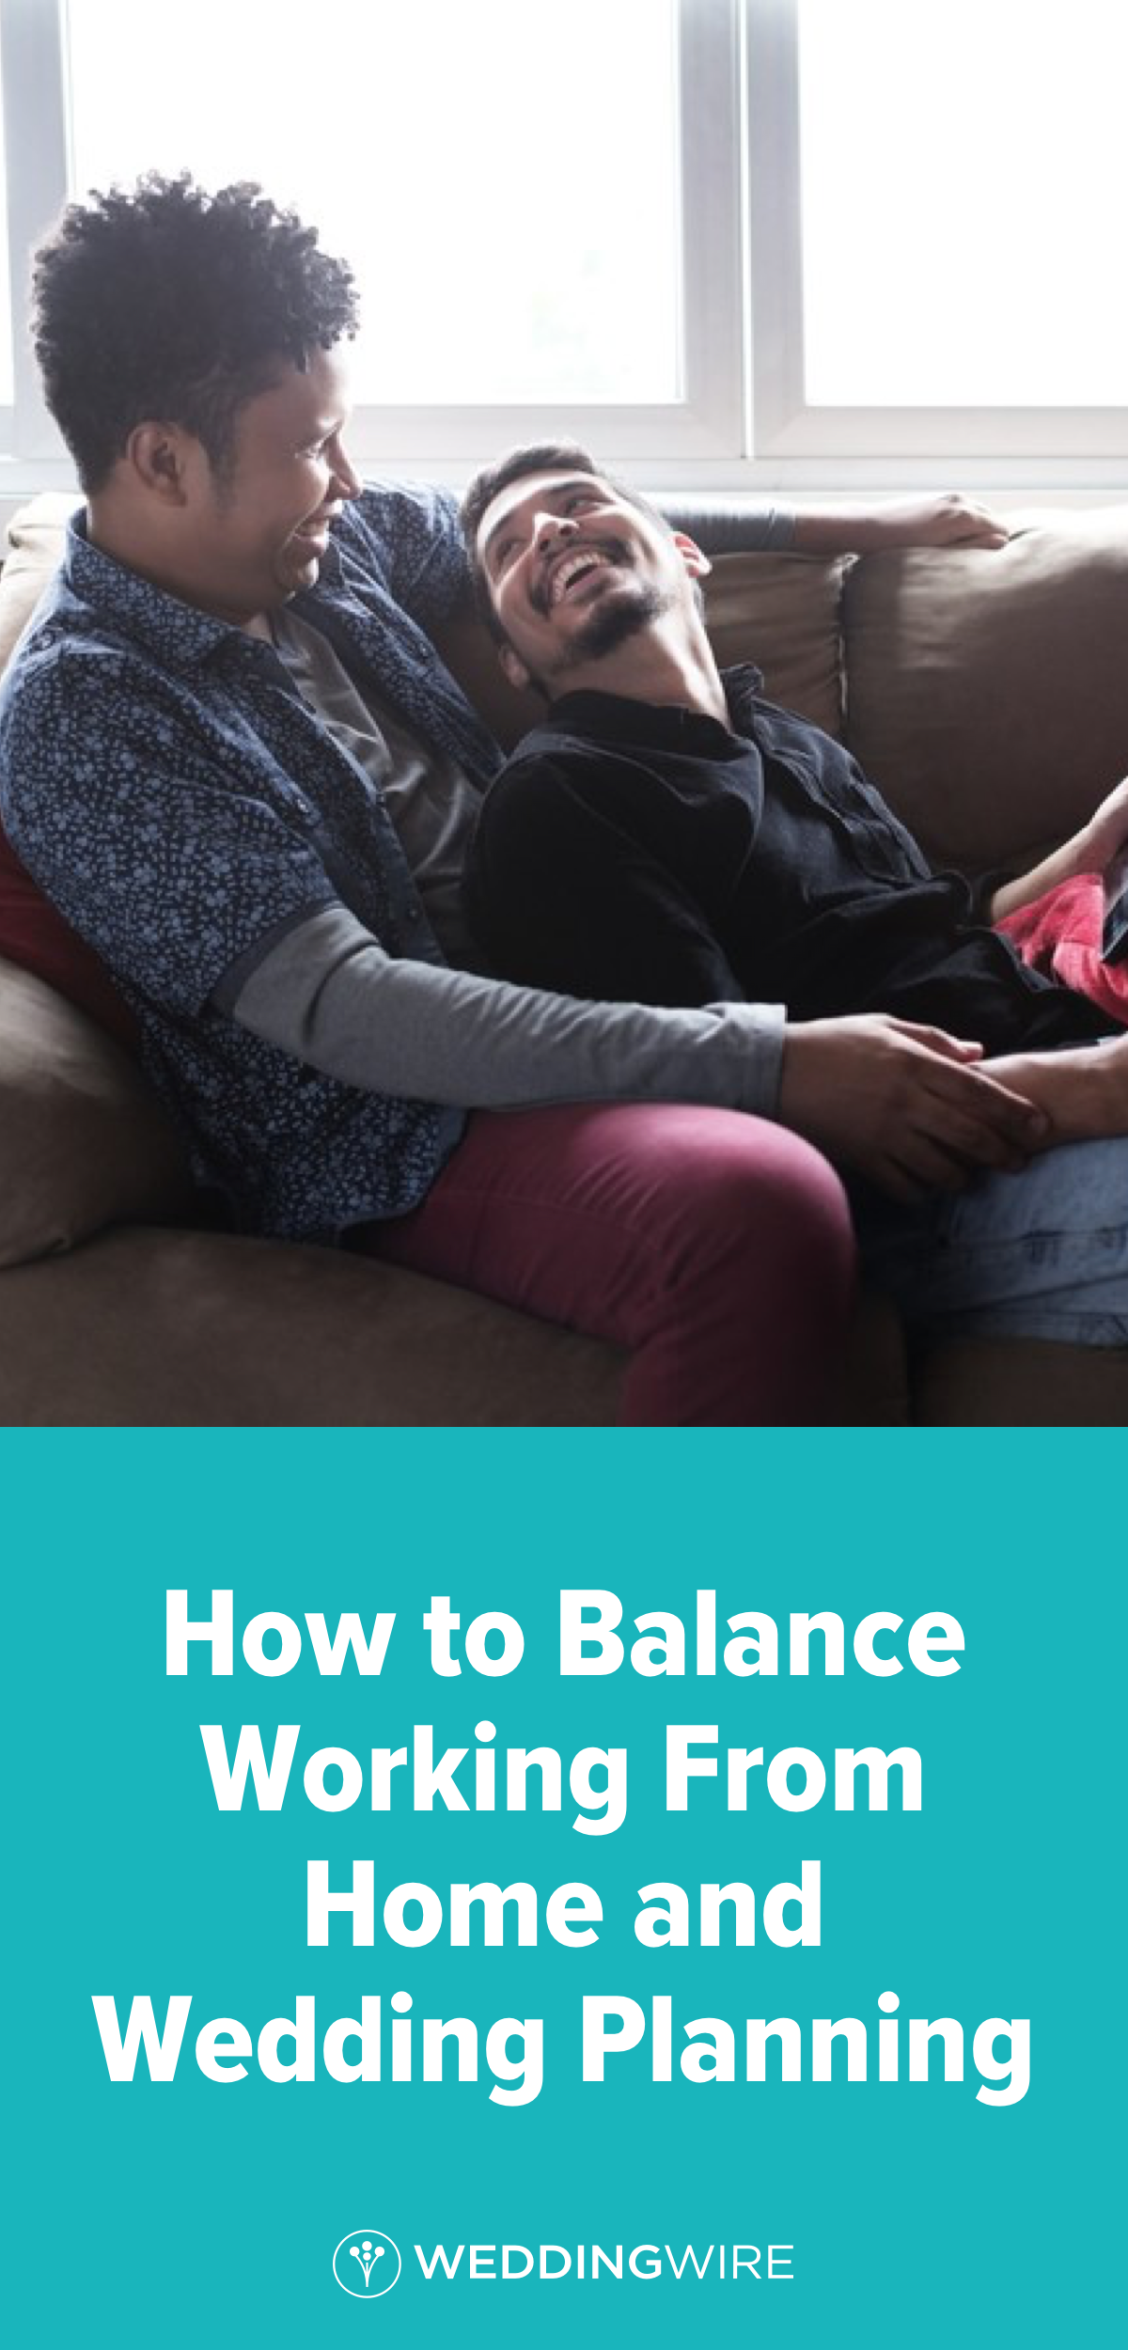 How to Balance Working From Home and Wedding Planning